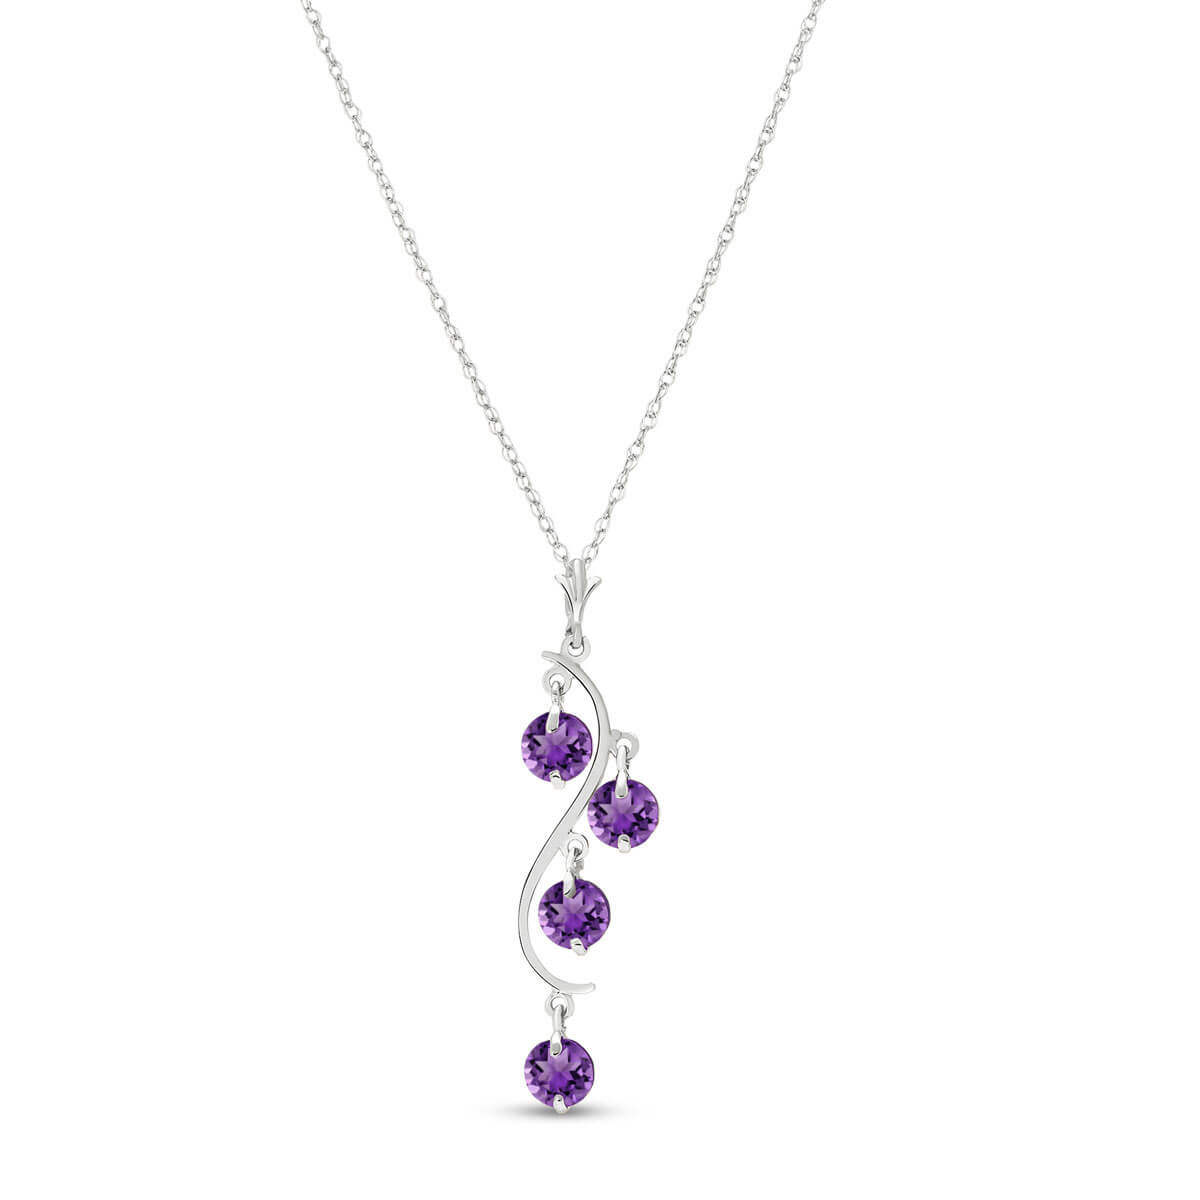 Amethyst Dream Catcher Pendant Necklace 2.25 ctw in 9ct White Gold